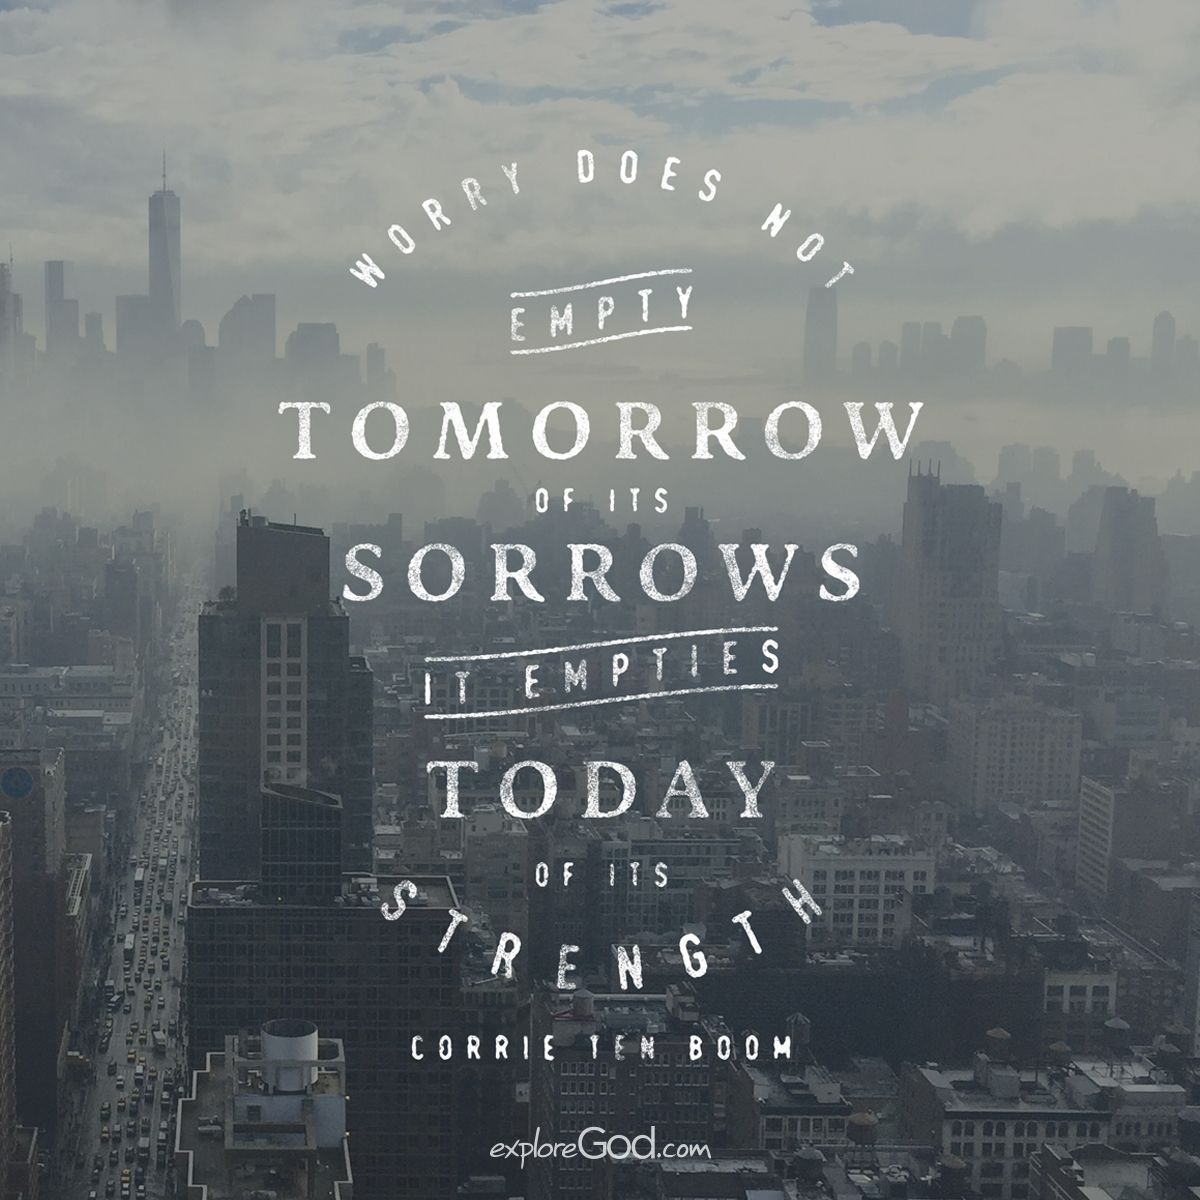 """Worry does not empty tomorrow of its sorrows; it empties today of its strength.""  - Corrie Ten Boom"